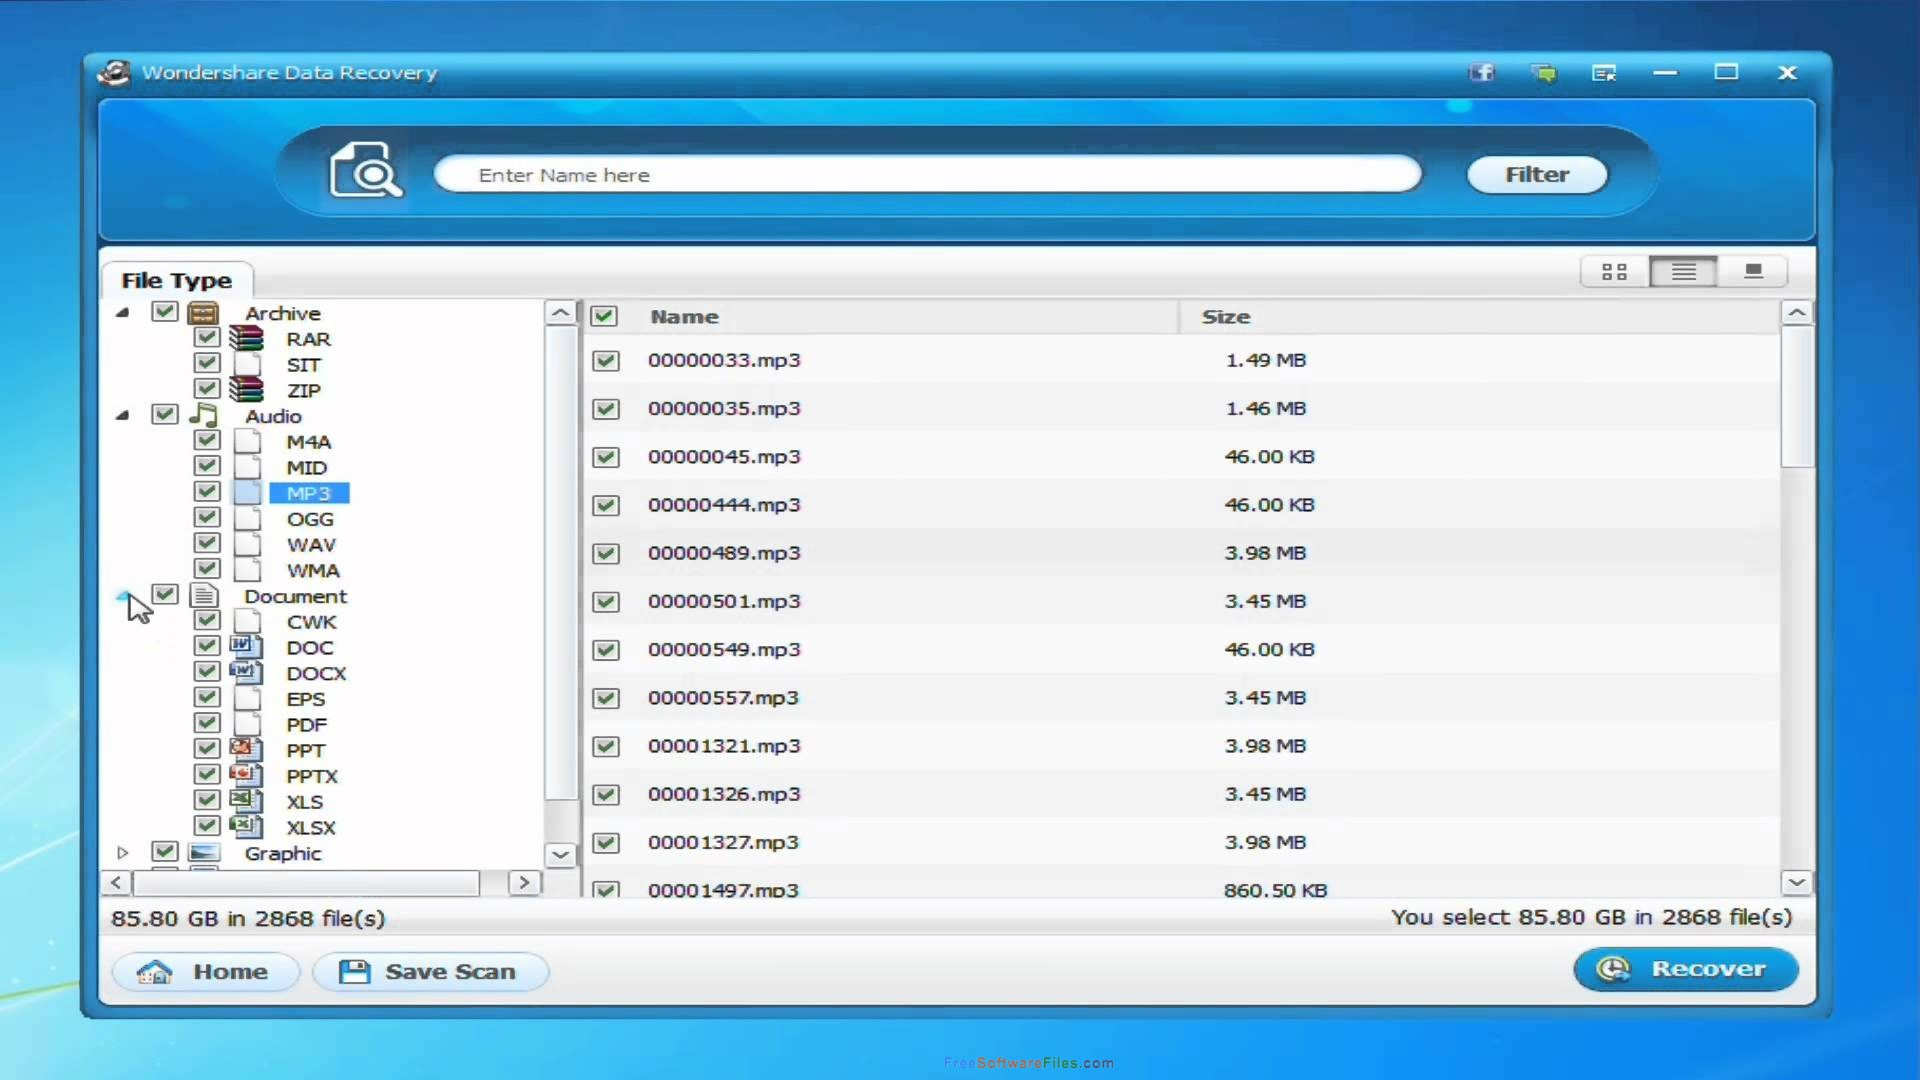 Wondershare Data Recovery 6.5.1.5 Free Download offline installer